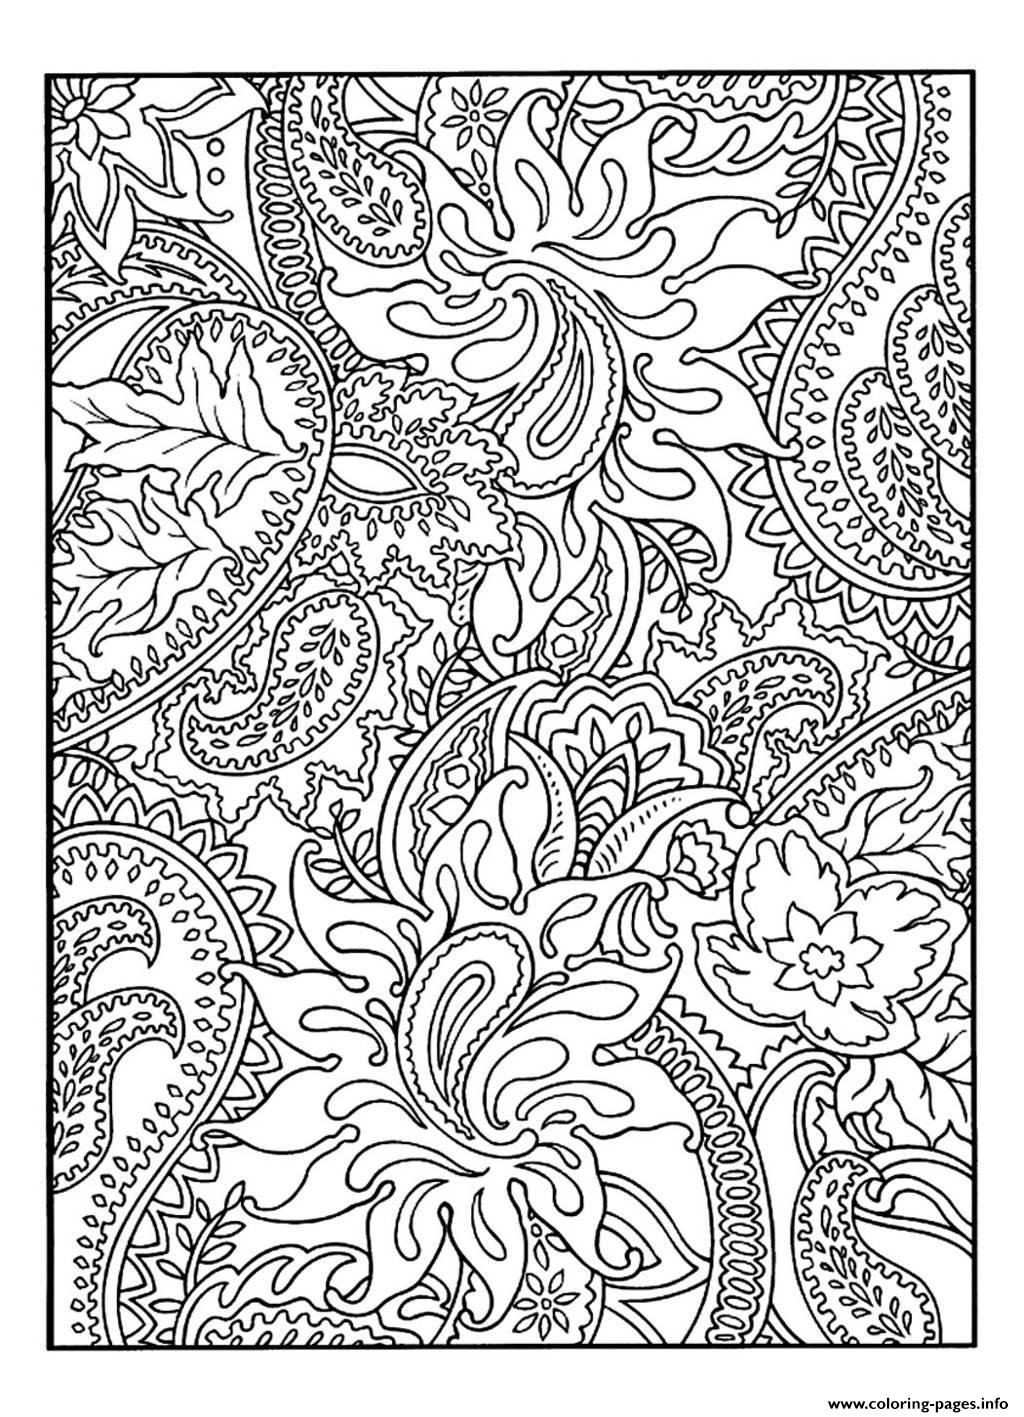 plants coloring pages Adult Pretty Patterns Plant Coloring Pages Printable plants coloring pages